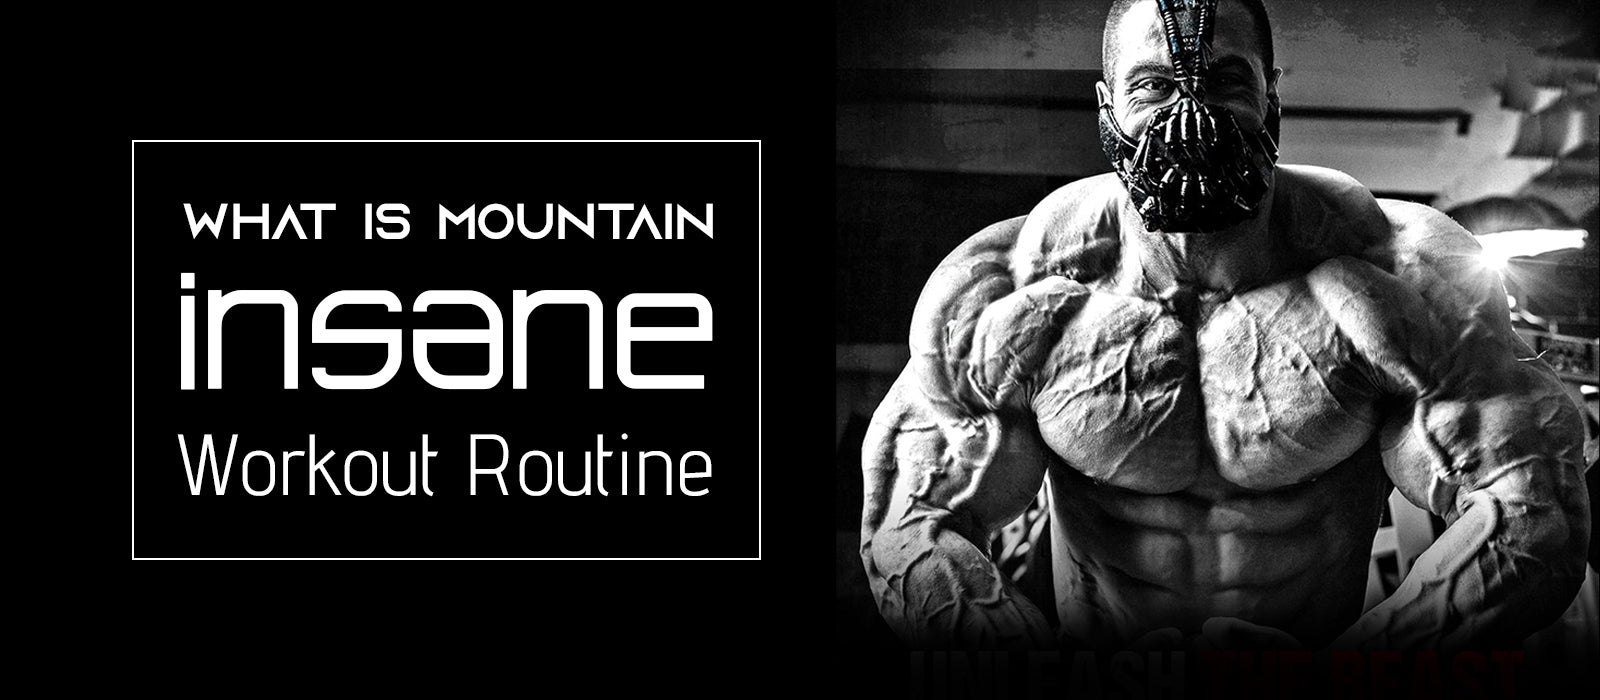 What Is Mountain INSANE Workout Routine